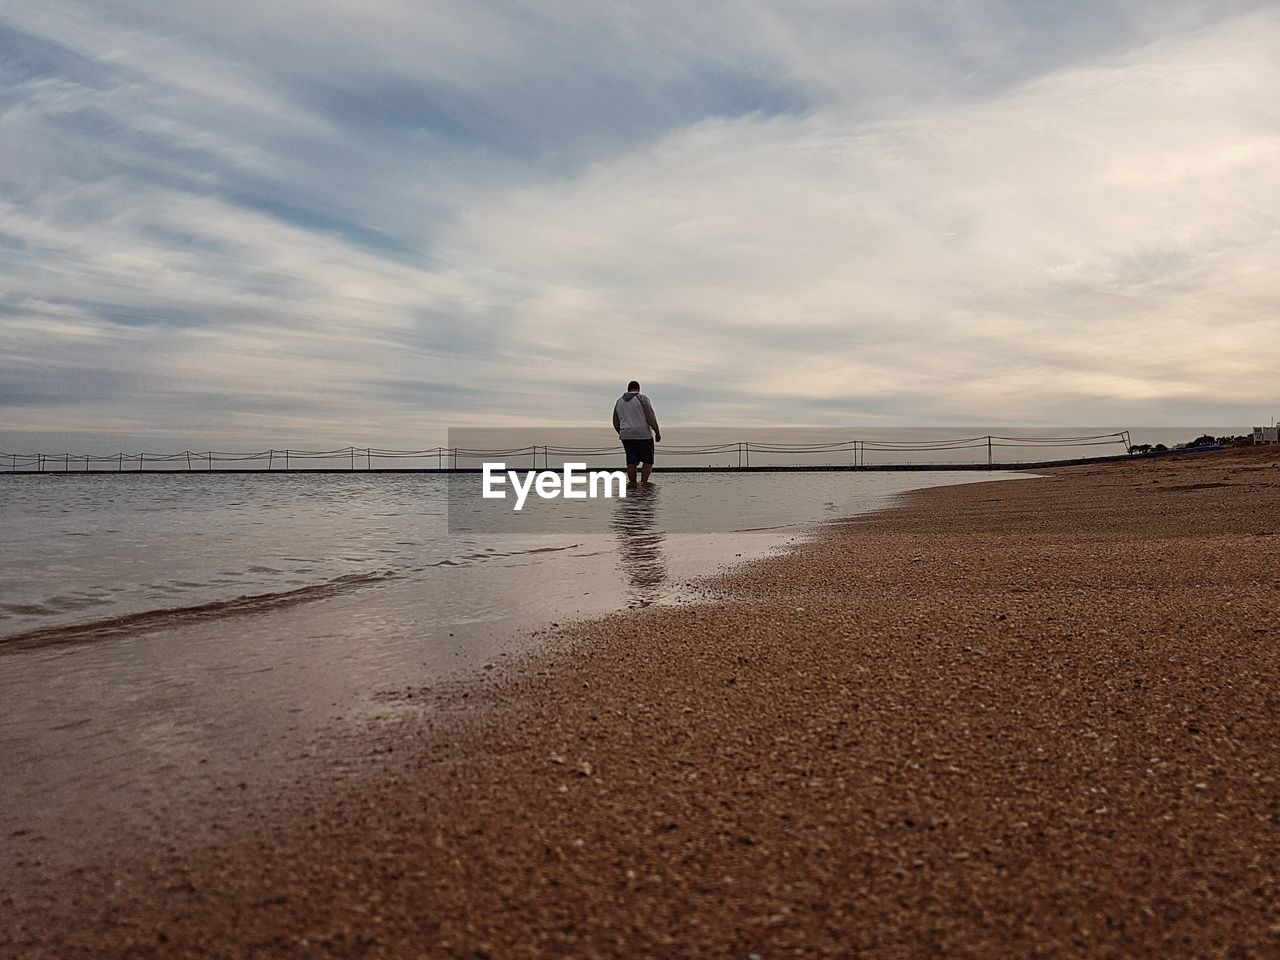 Rear view of man standing at beach